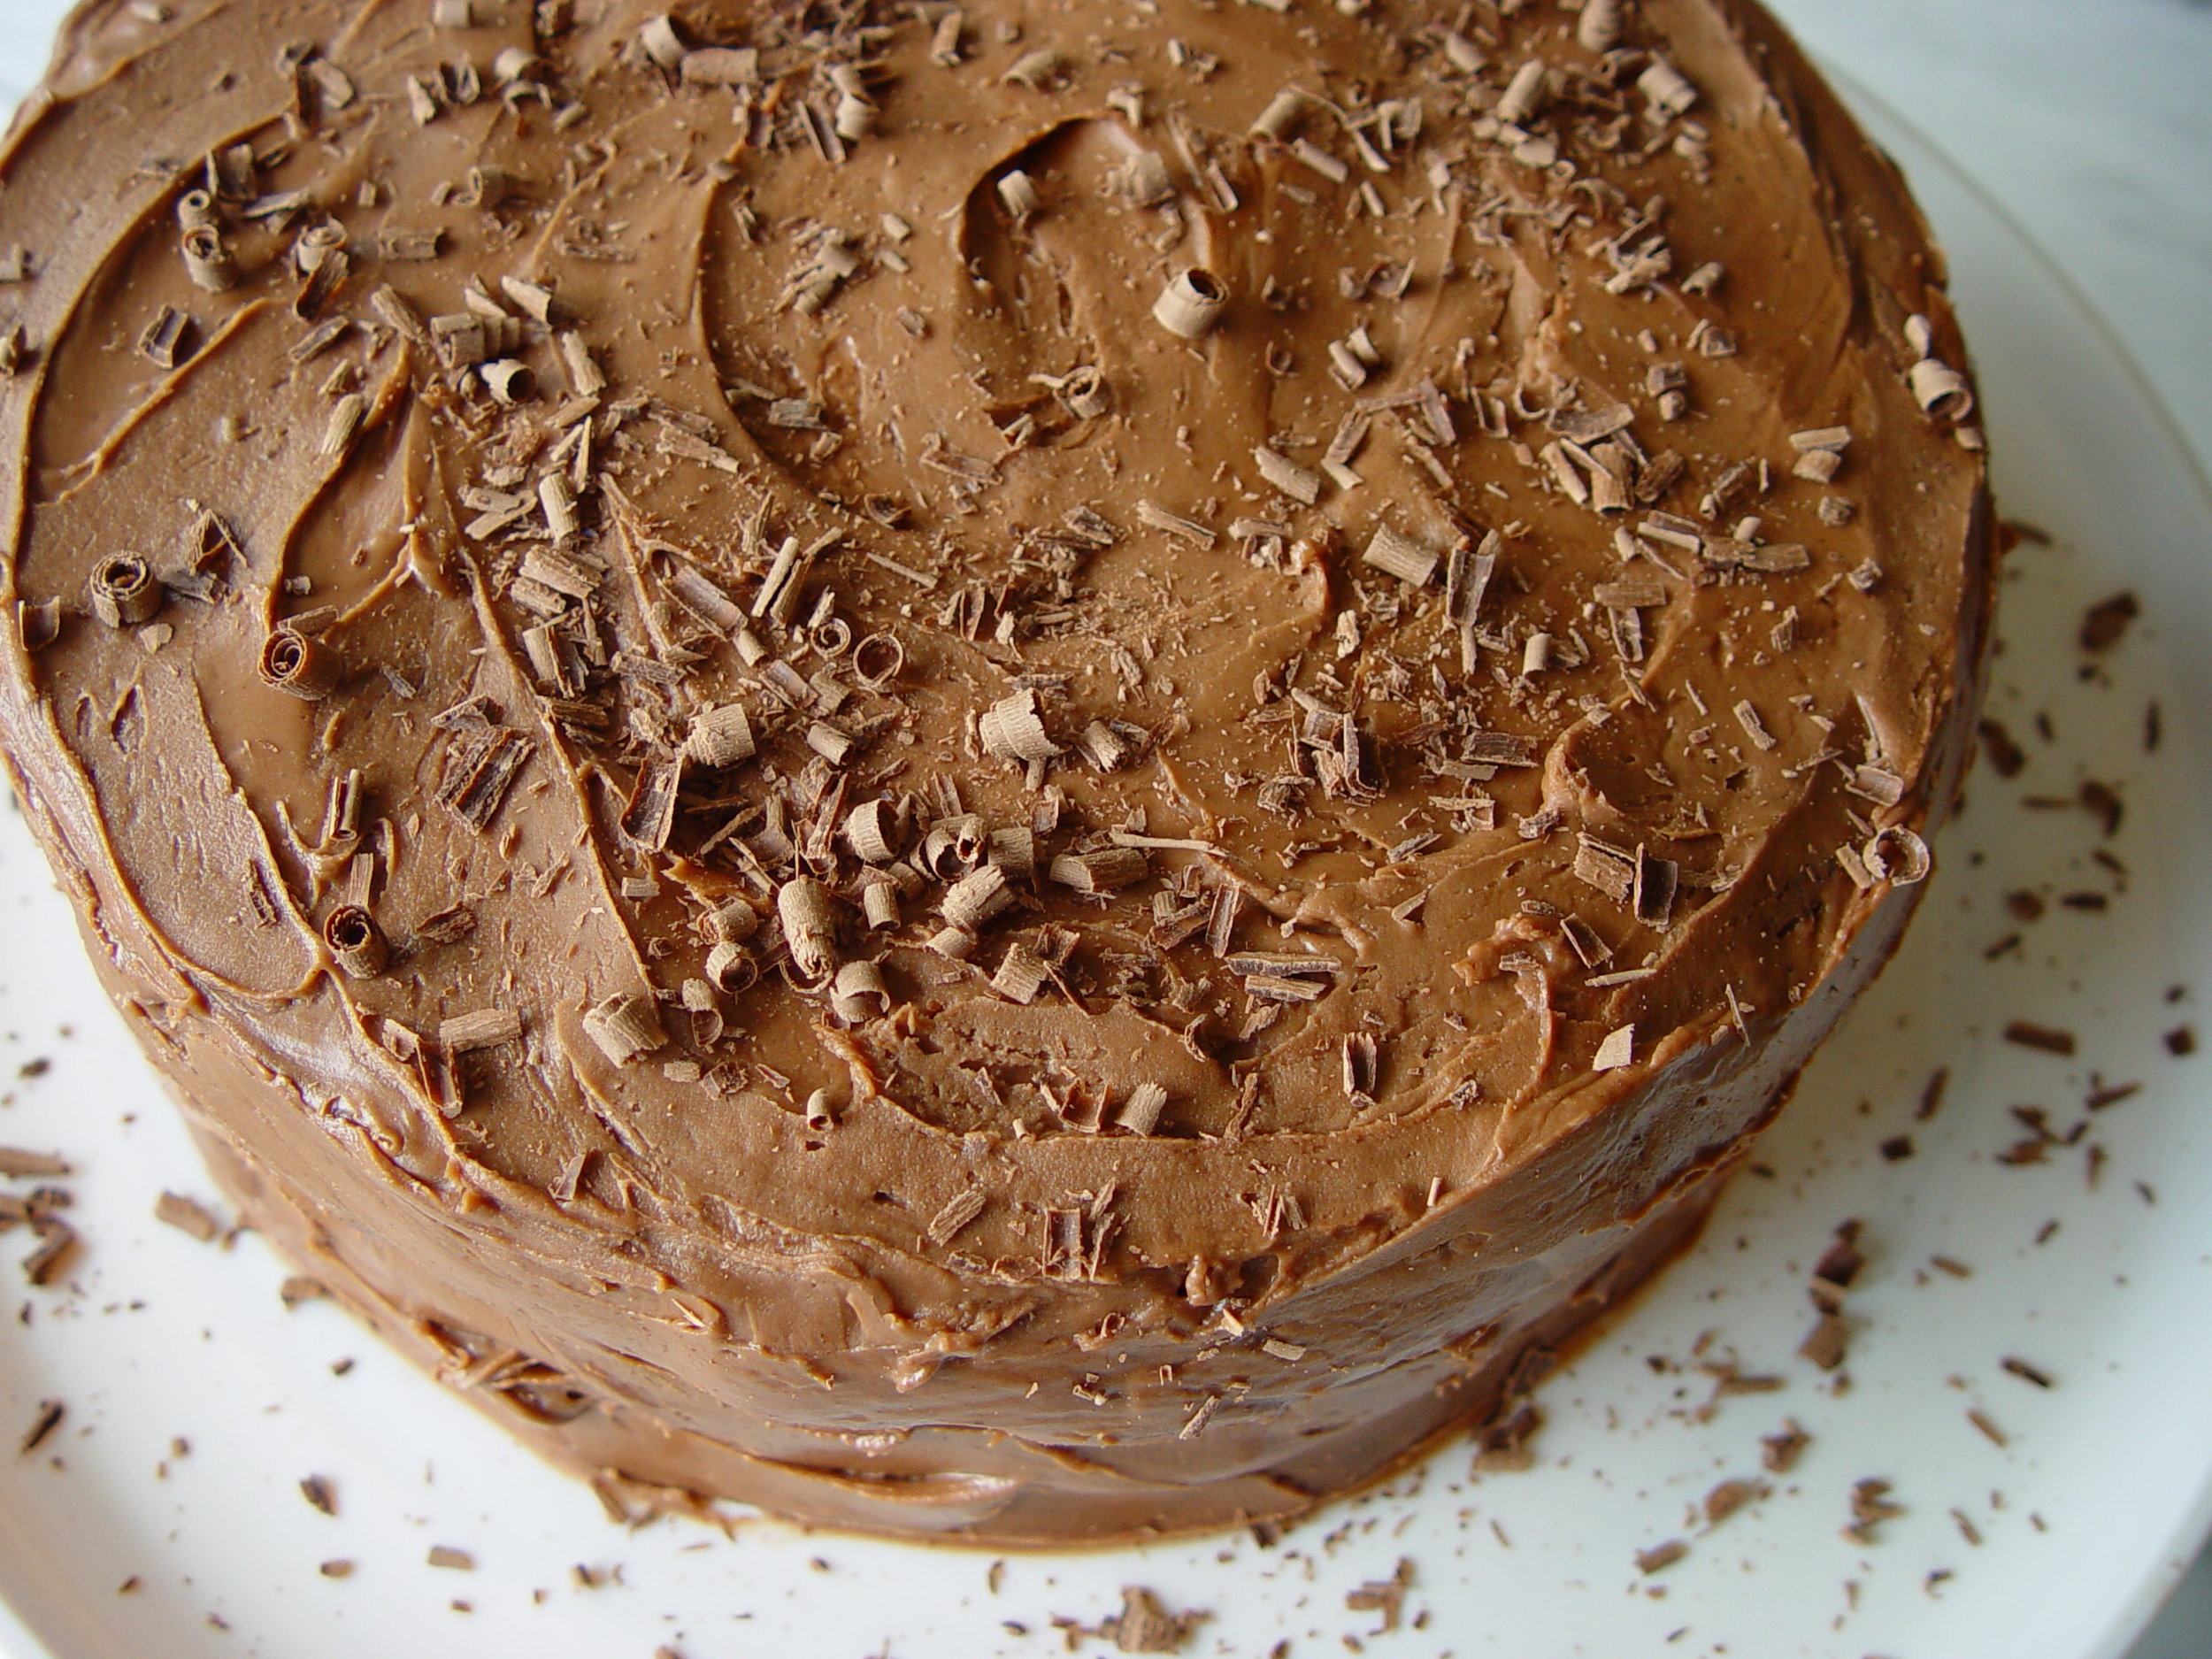 Double Layer Chocolate Cake revised from Hershey's 1934 Cookbook